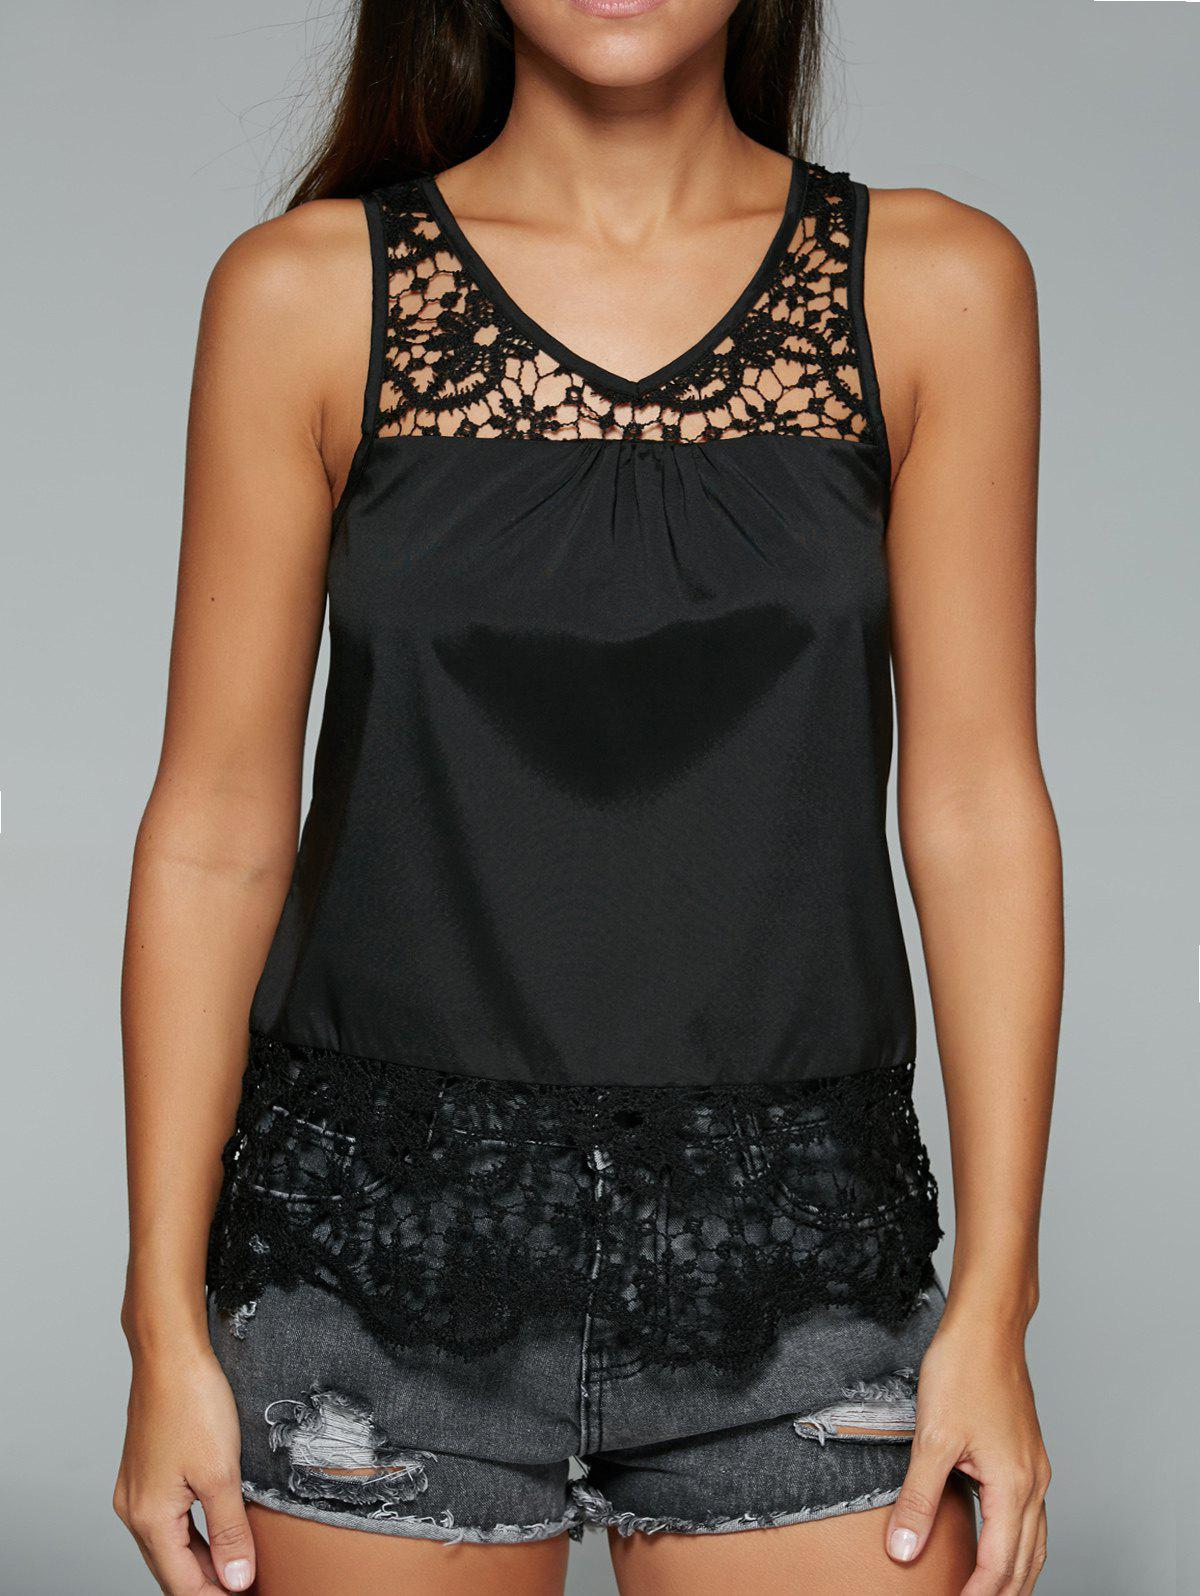 Lace Spliced V Neck Hollow Out Tank Top - BLACK XL